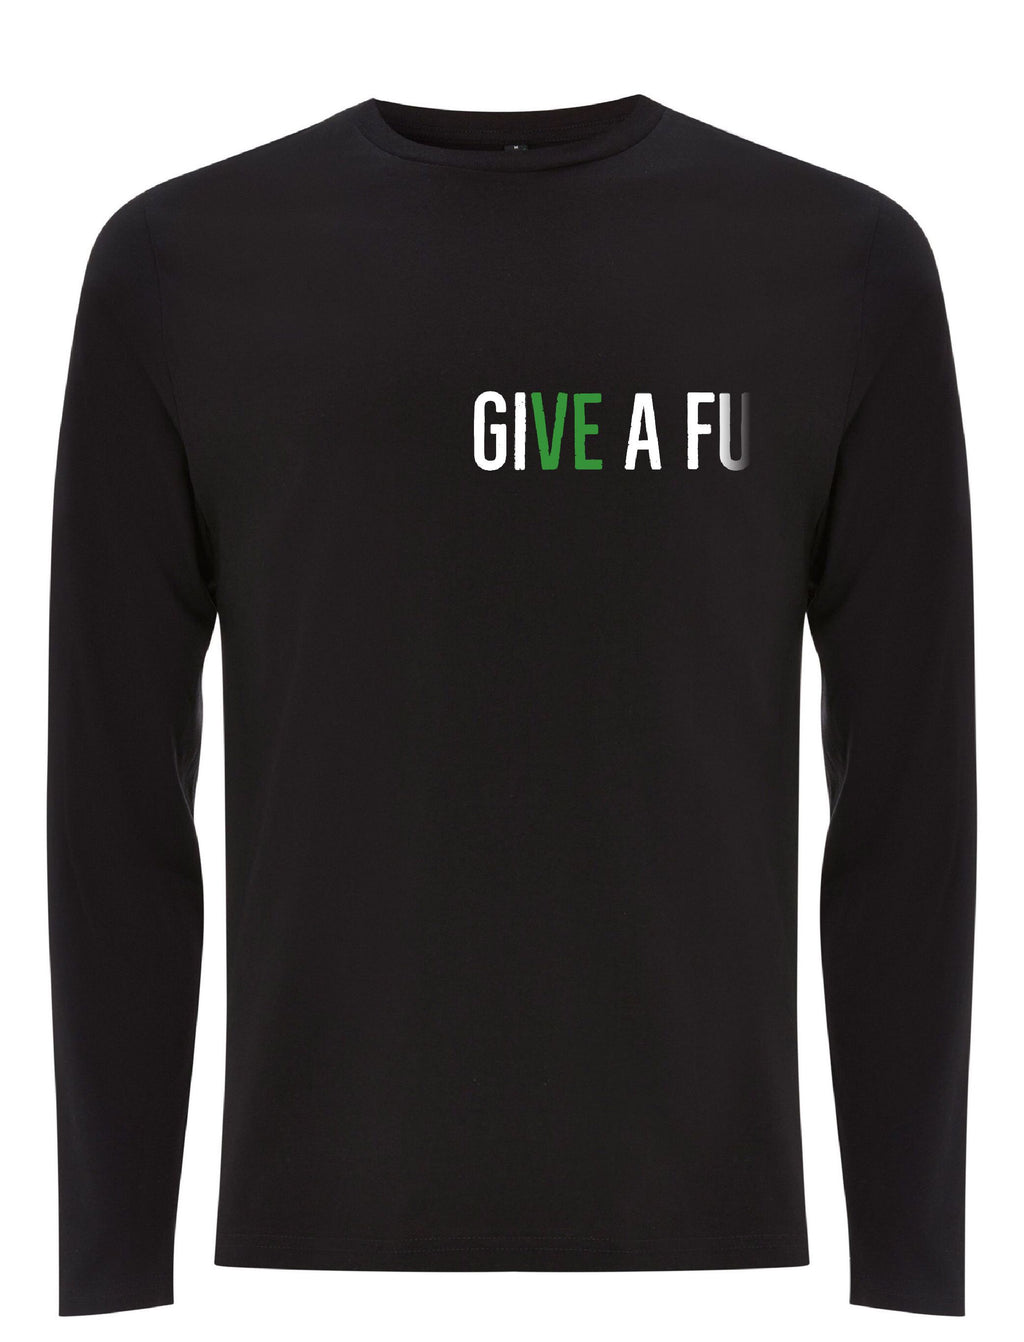 GIVE A FU Original Men's Long Sleeve Organic Cotton T-shirt